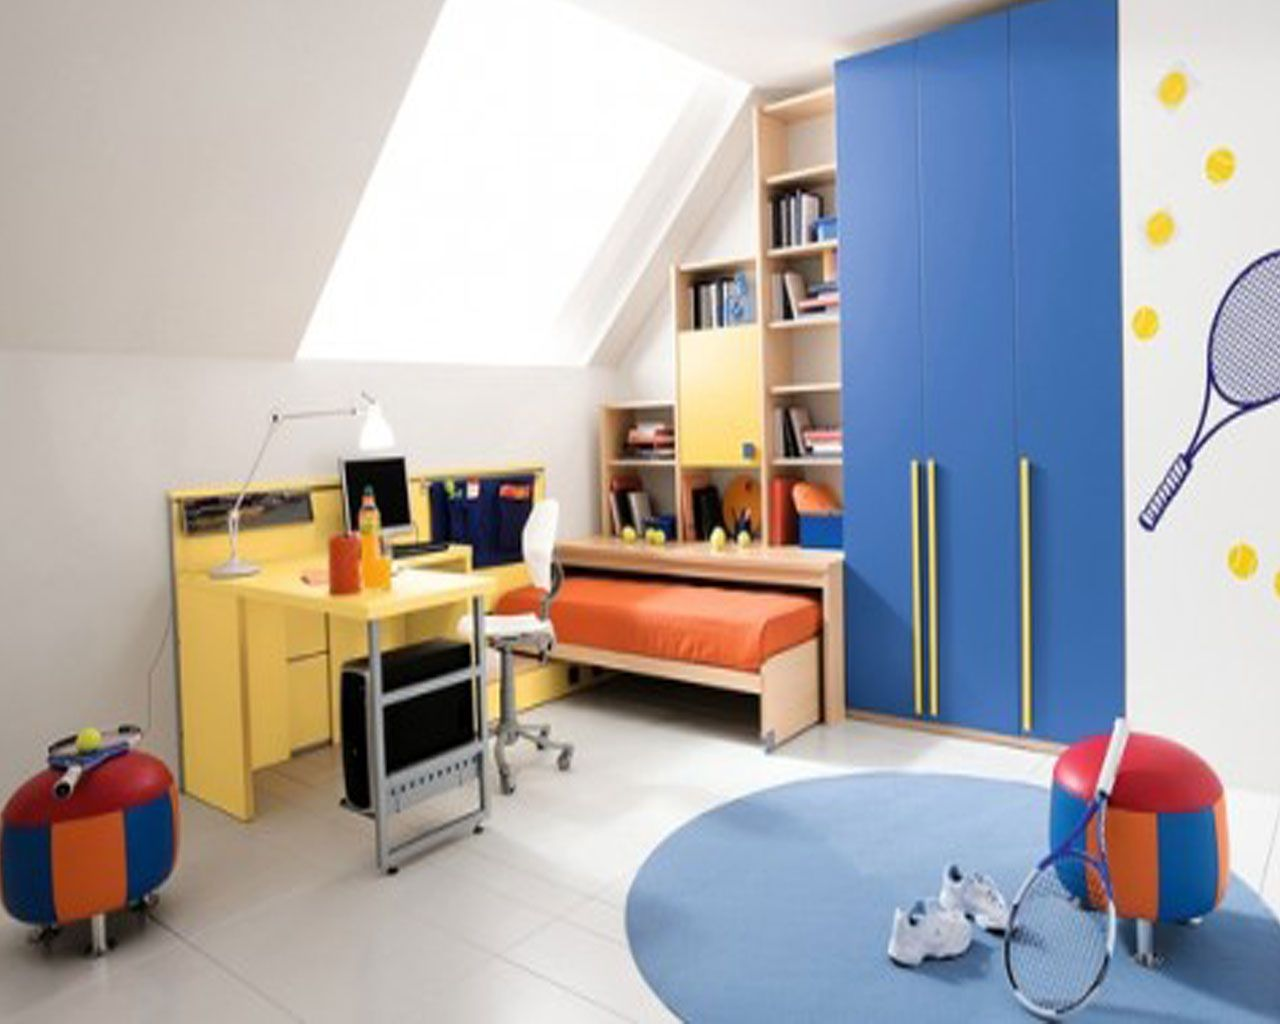 Attic White Kids Boys Bedroom Ideas Pictures With Small Brown Wood Bed Frame That Have Orange Bedding Complete The Wall Shelf Also Simple Yellows